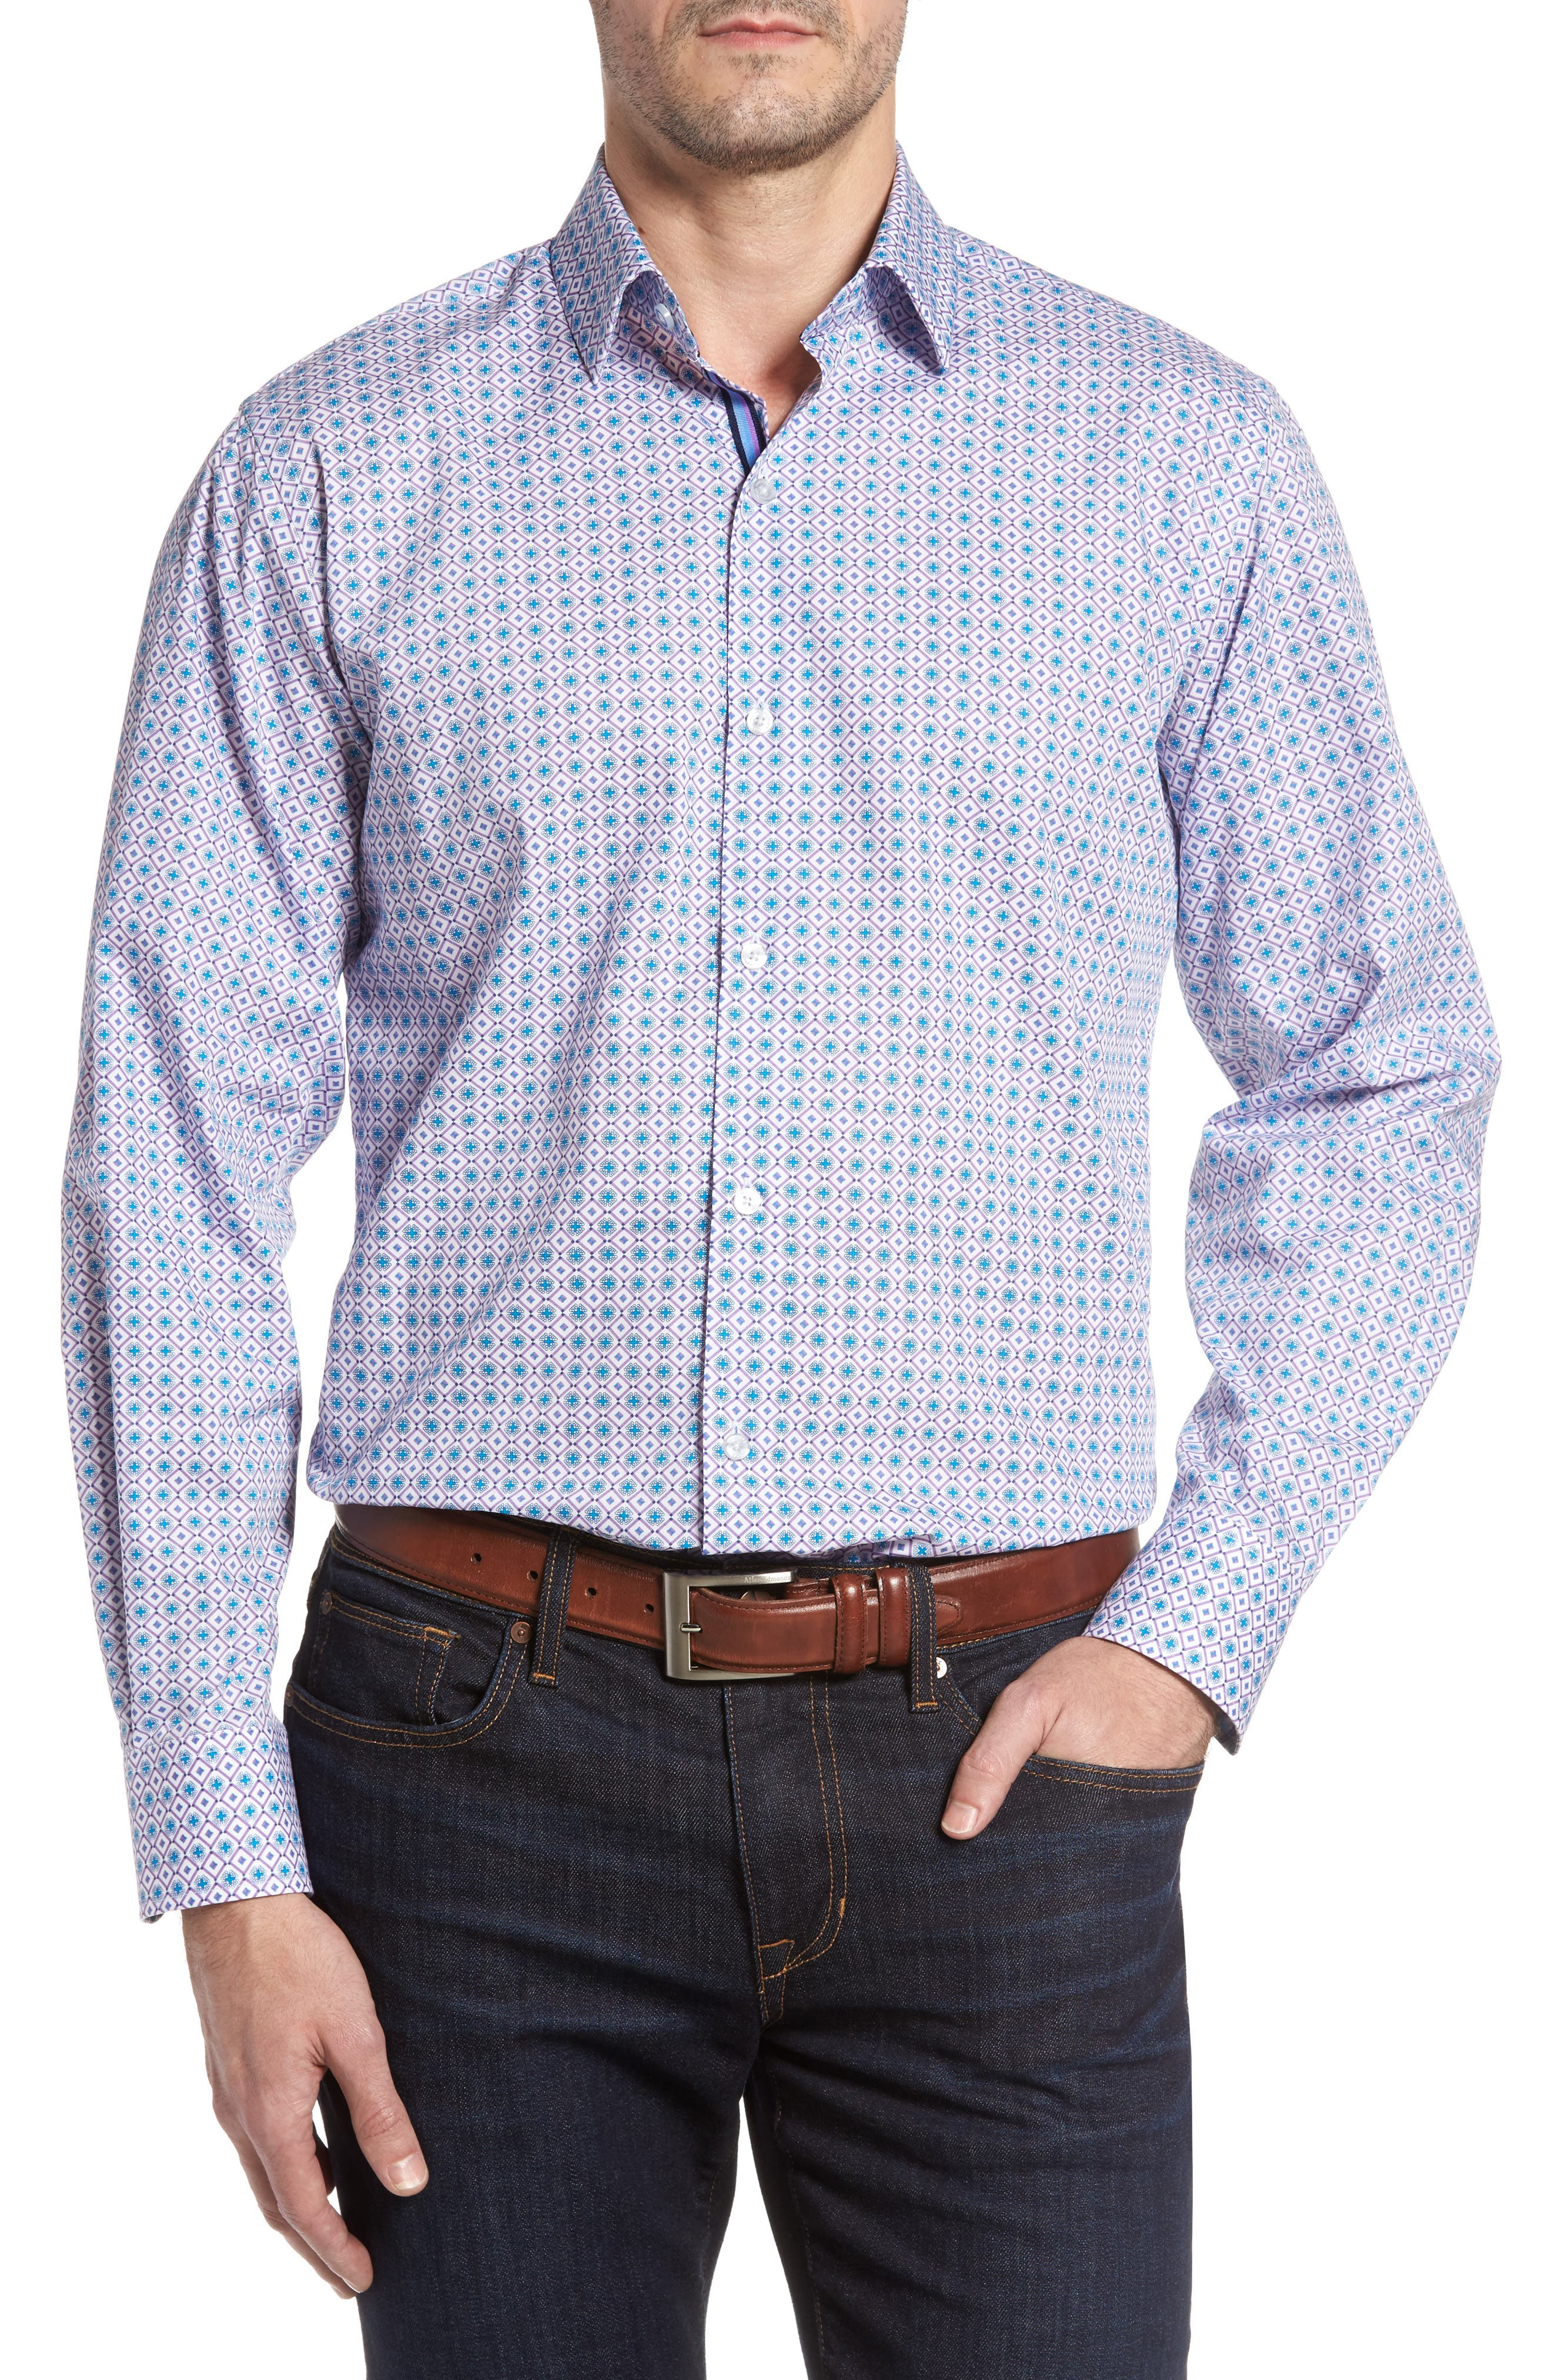 Alternate Image 1 Selected - TailorByrd Sycamore Print Sport Shirt